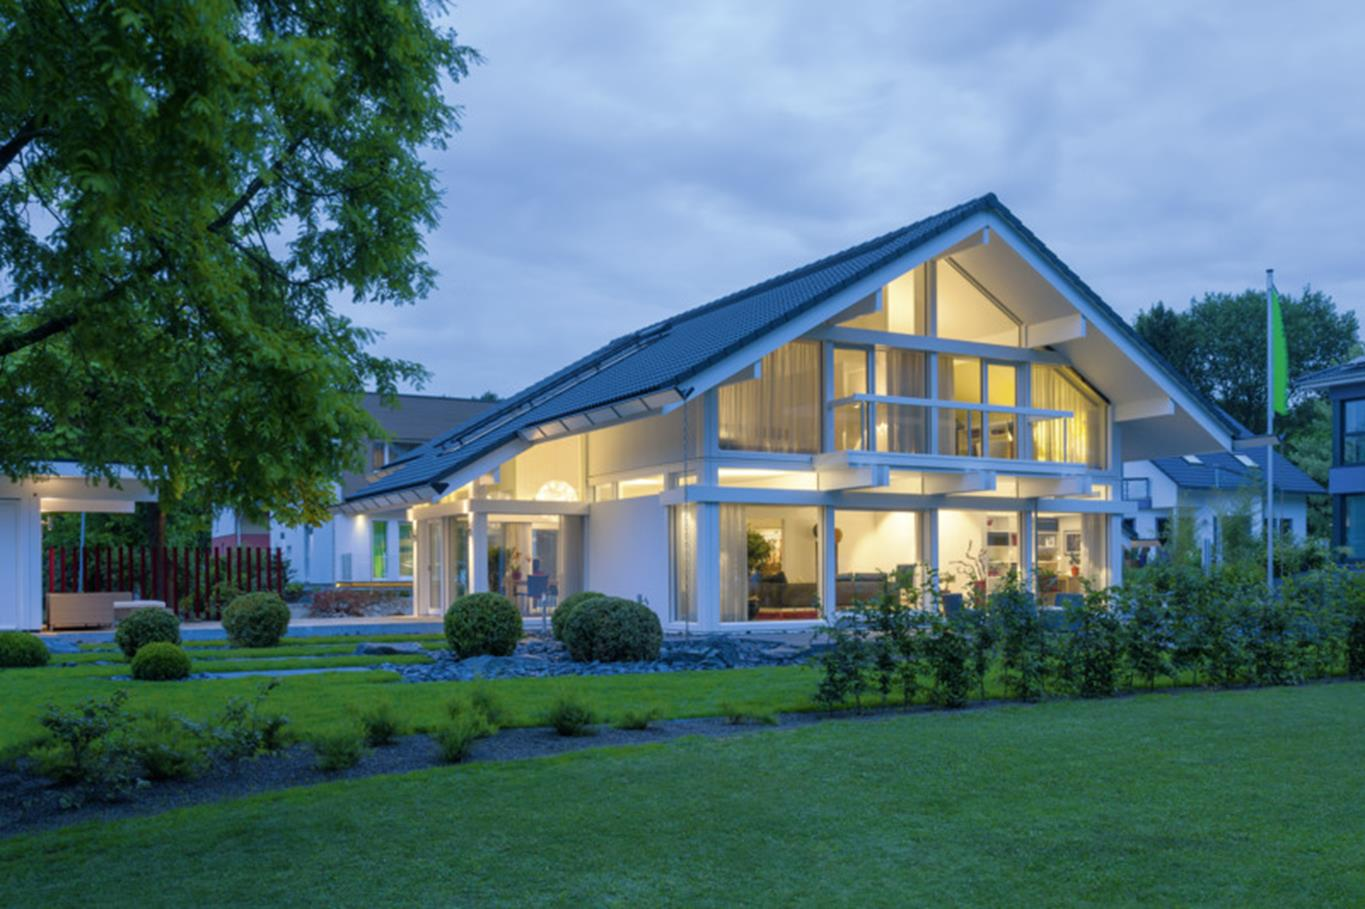 Image of pitched roof home in evening